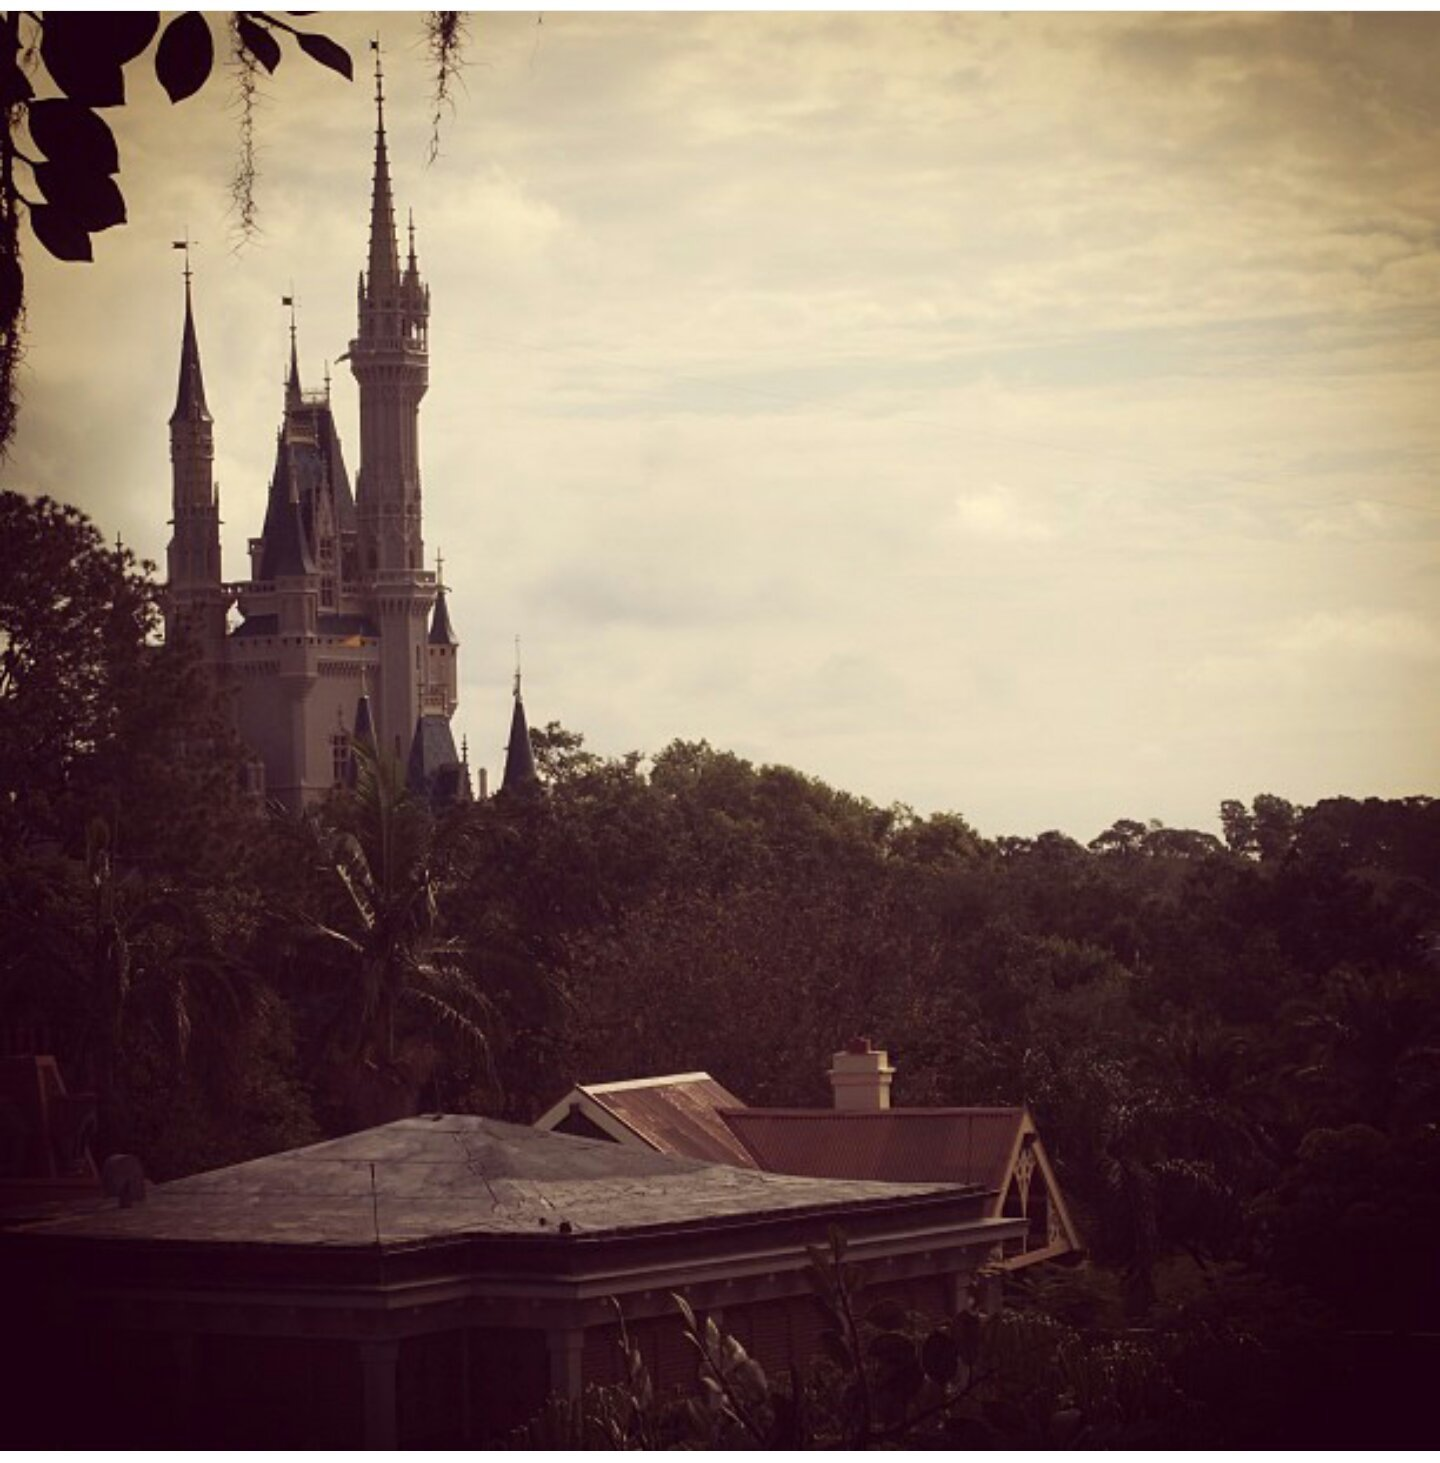 A few pictures from my trip to Disney back in 2013.